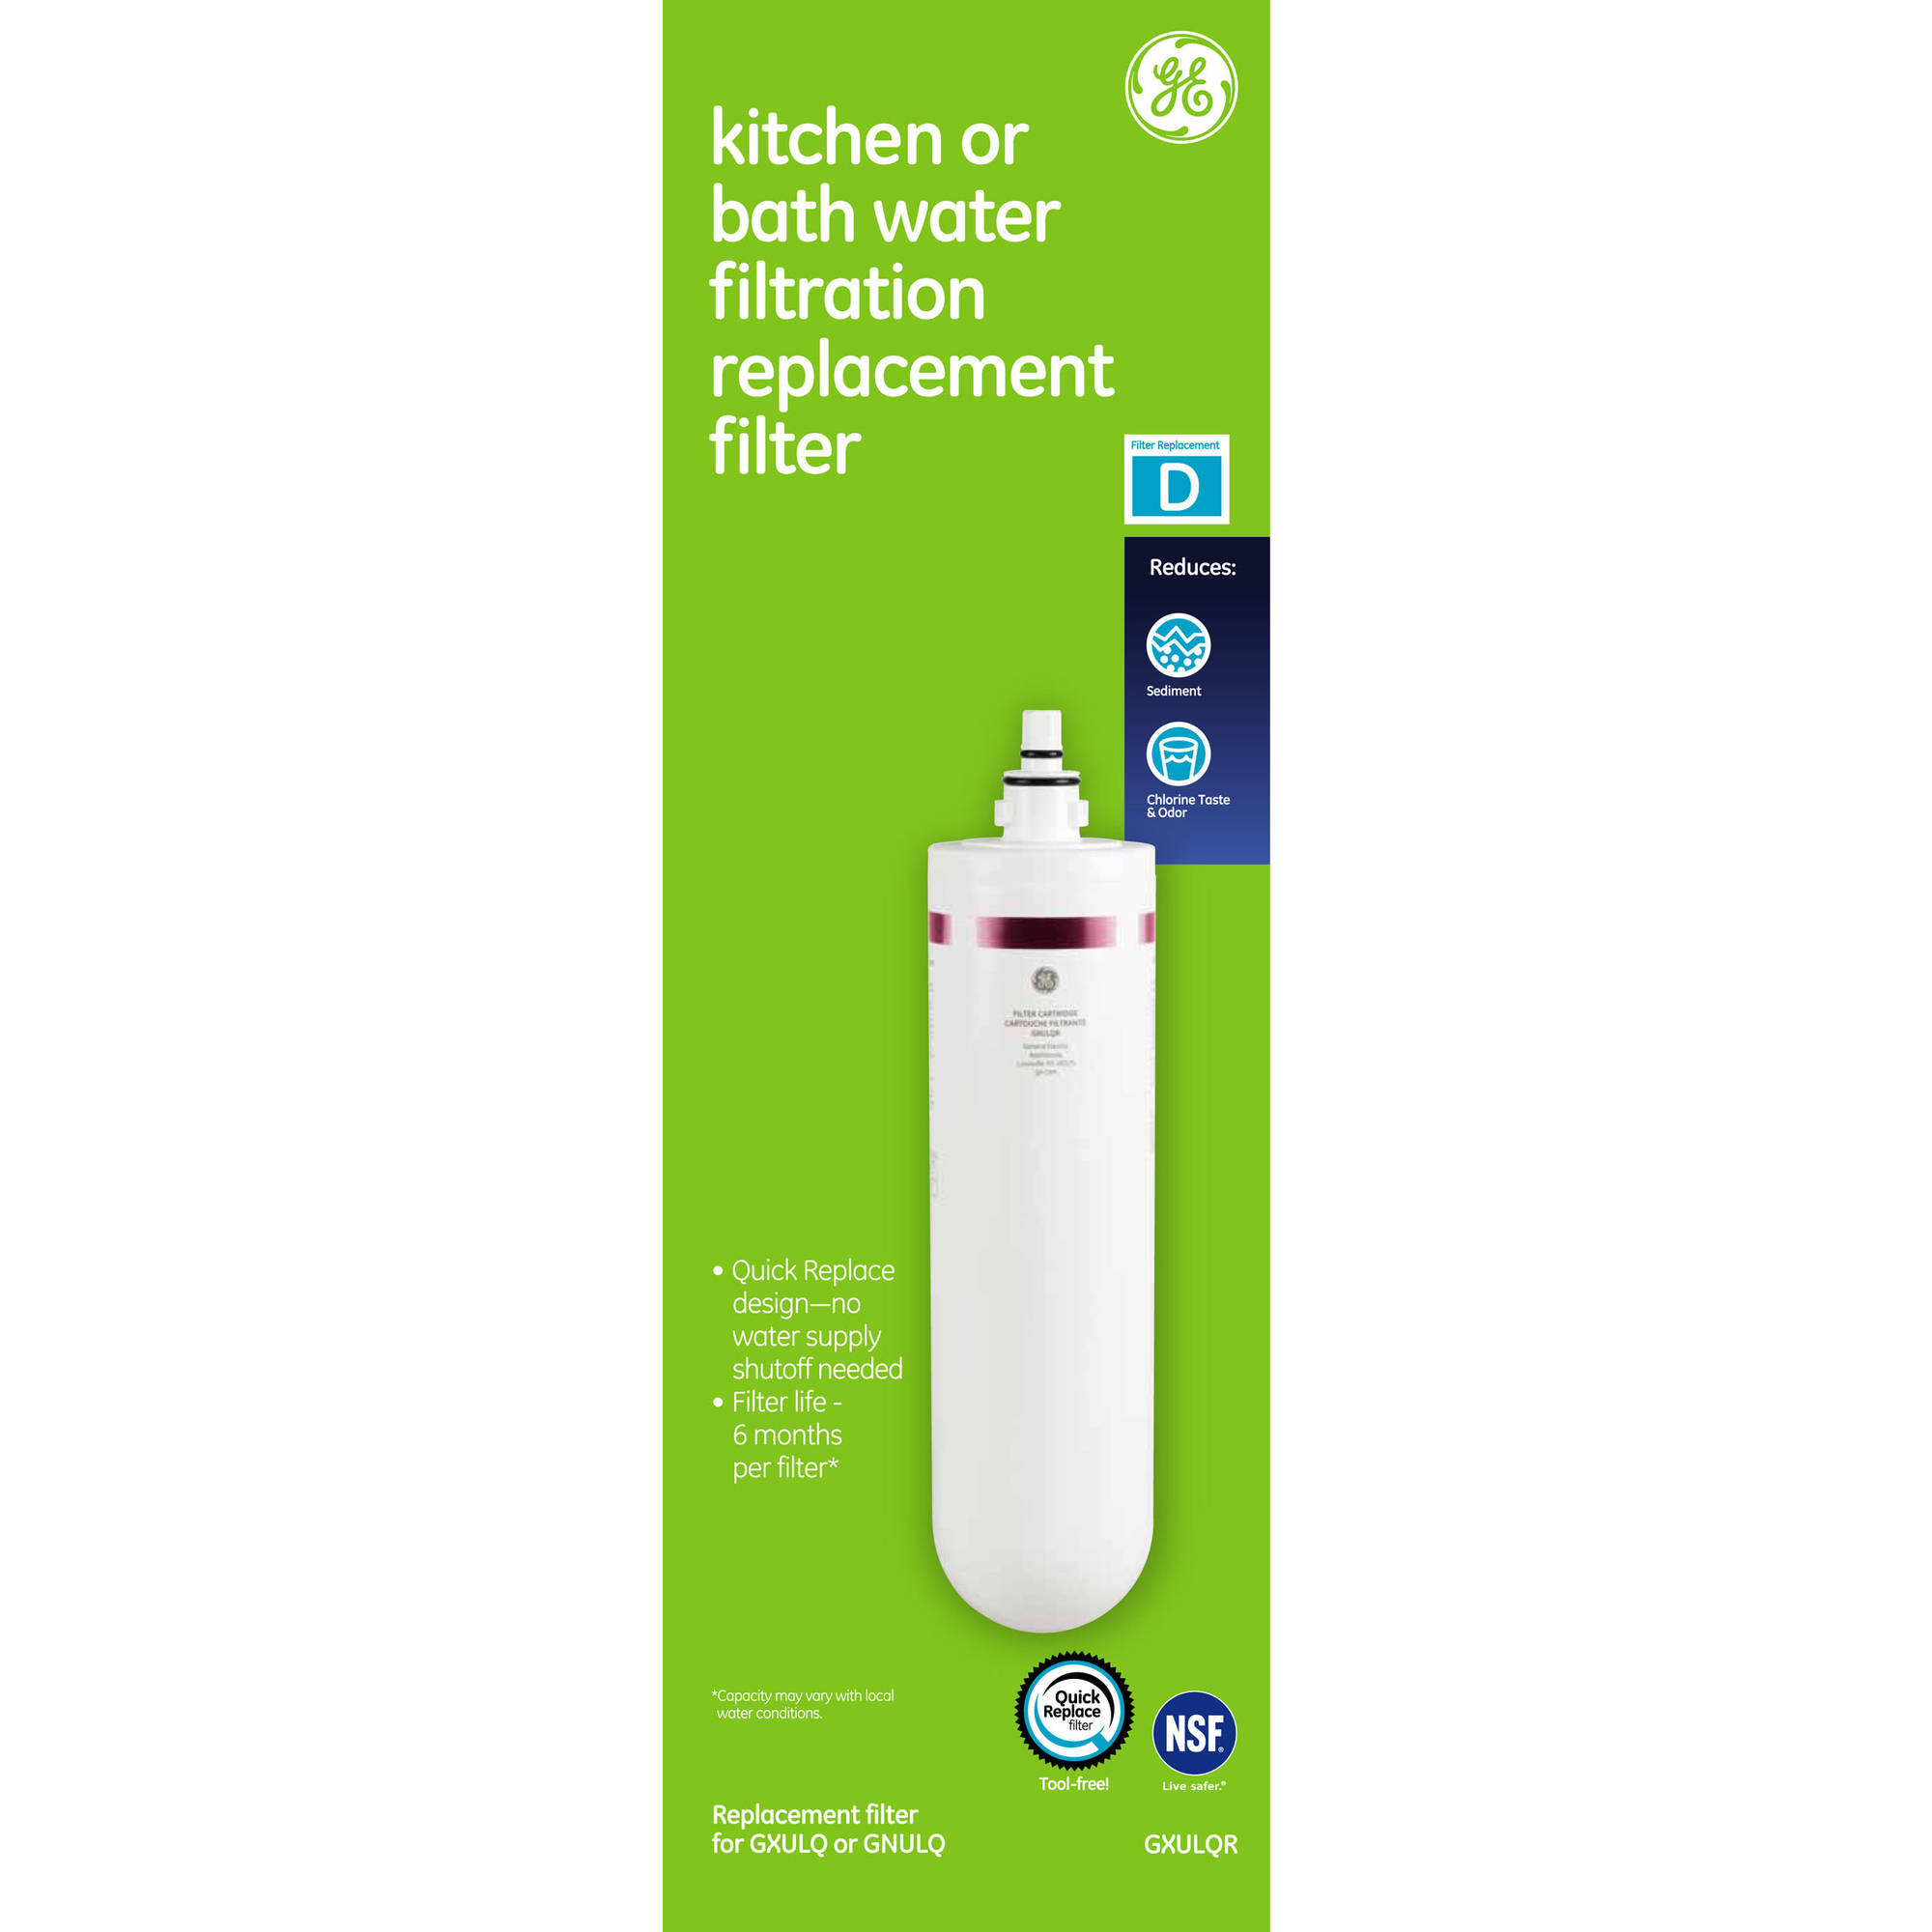 GE Kitchen and Bath Replacement Filter